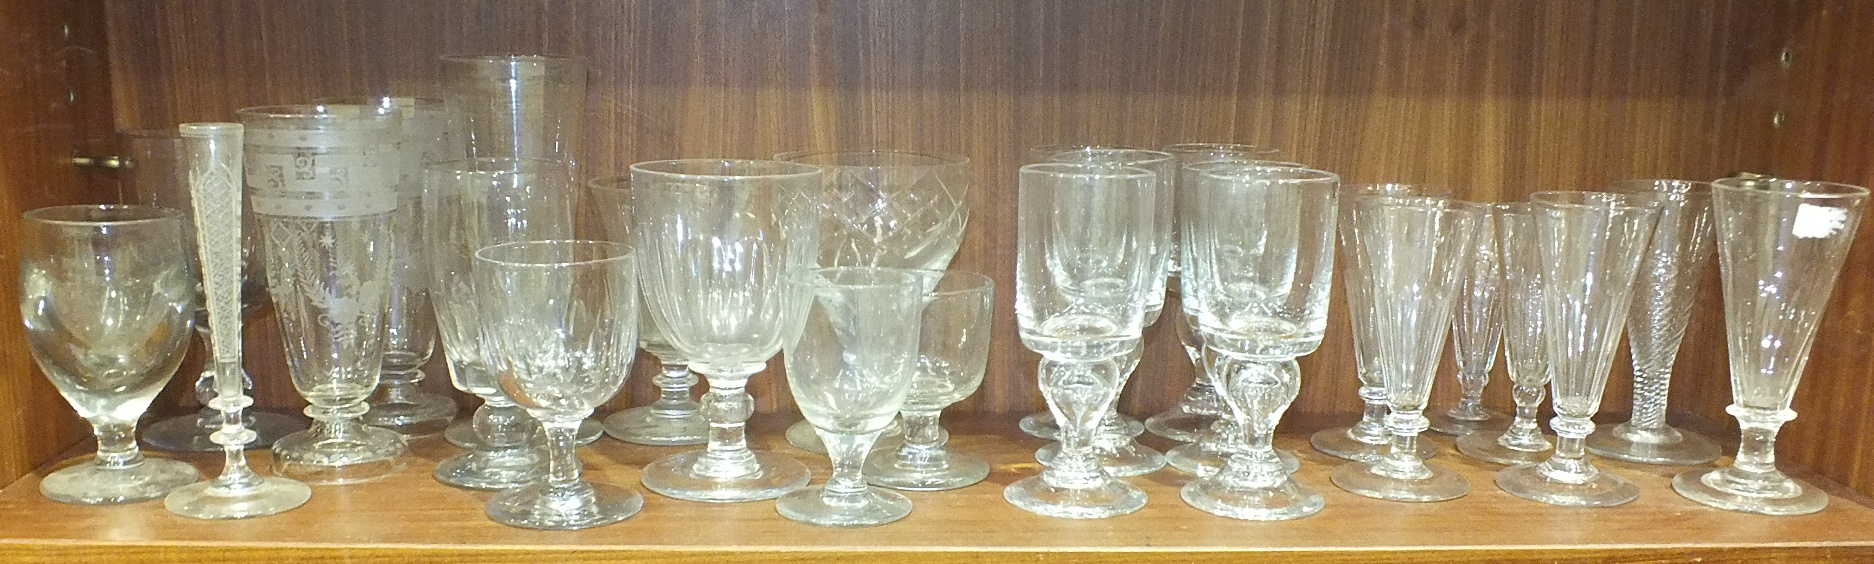 Lot 64 - Approximately fifty-seven mainly-19th century drinking glasses, including Champagne saucers, wine